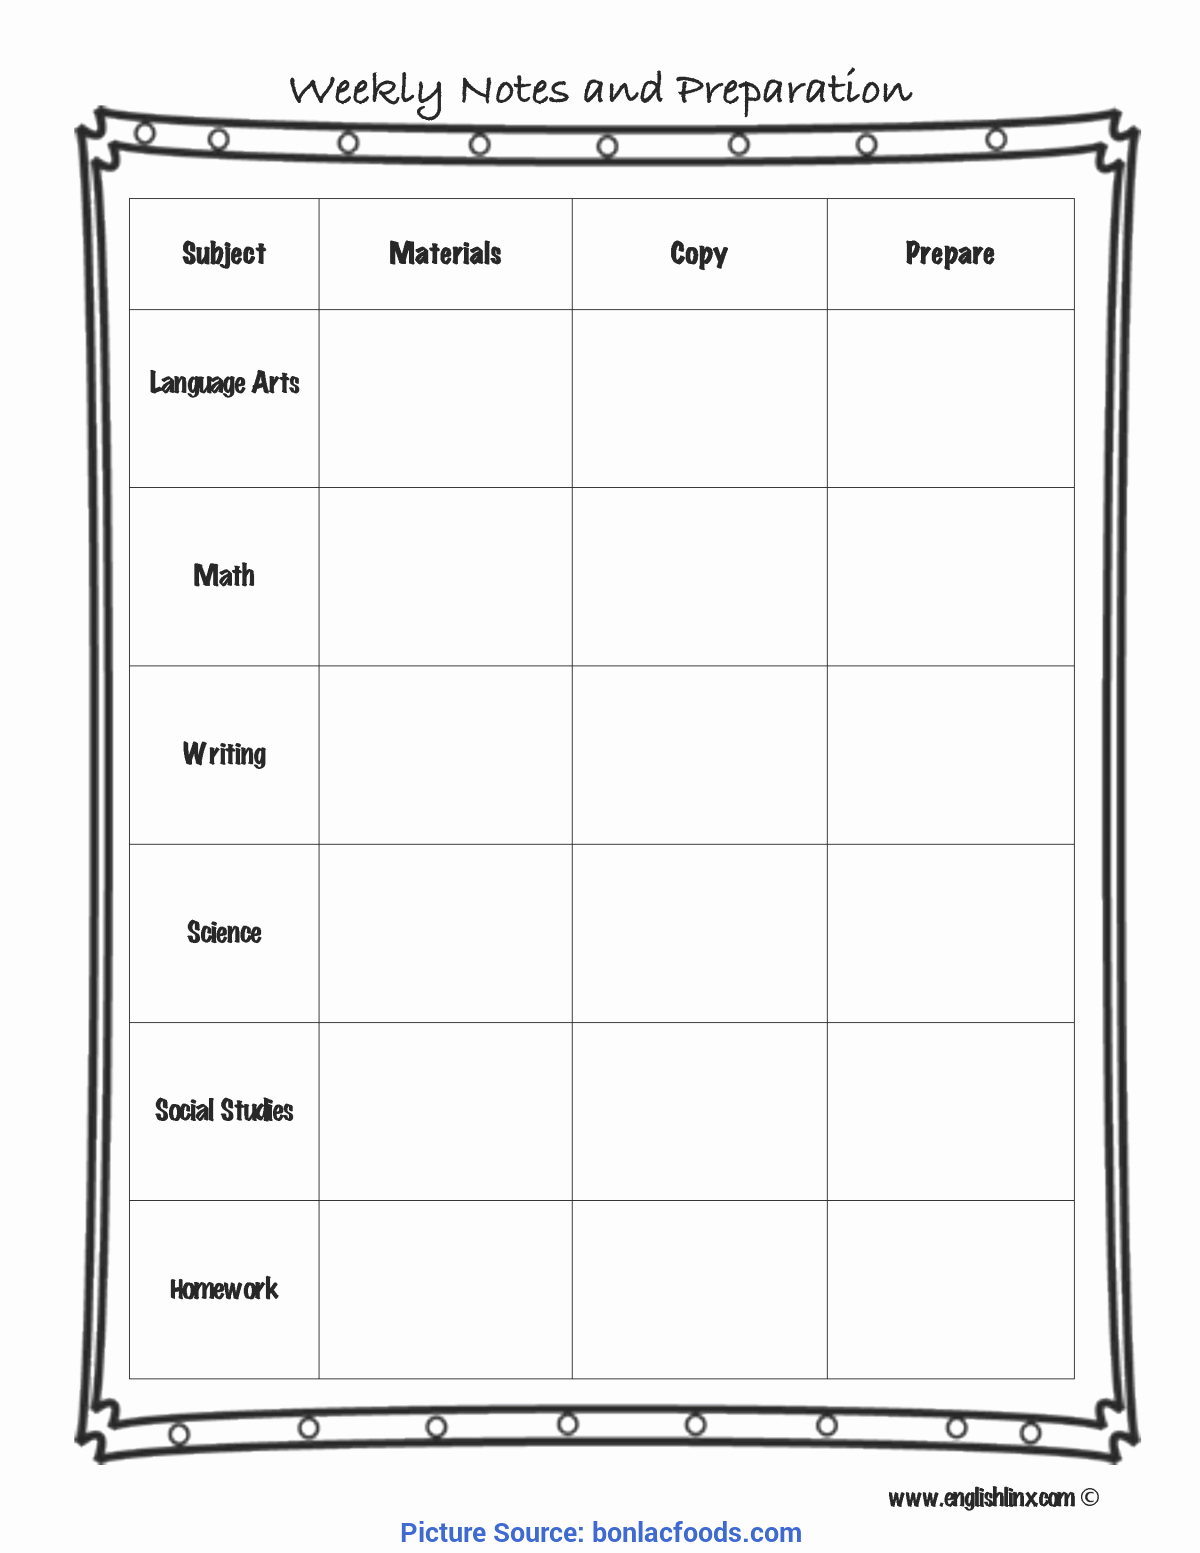 Elementary Art Lesson Plan Template Lovely top Jamestown Lesson Plans 2nd Grade Jamestown Elementary